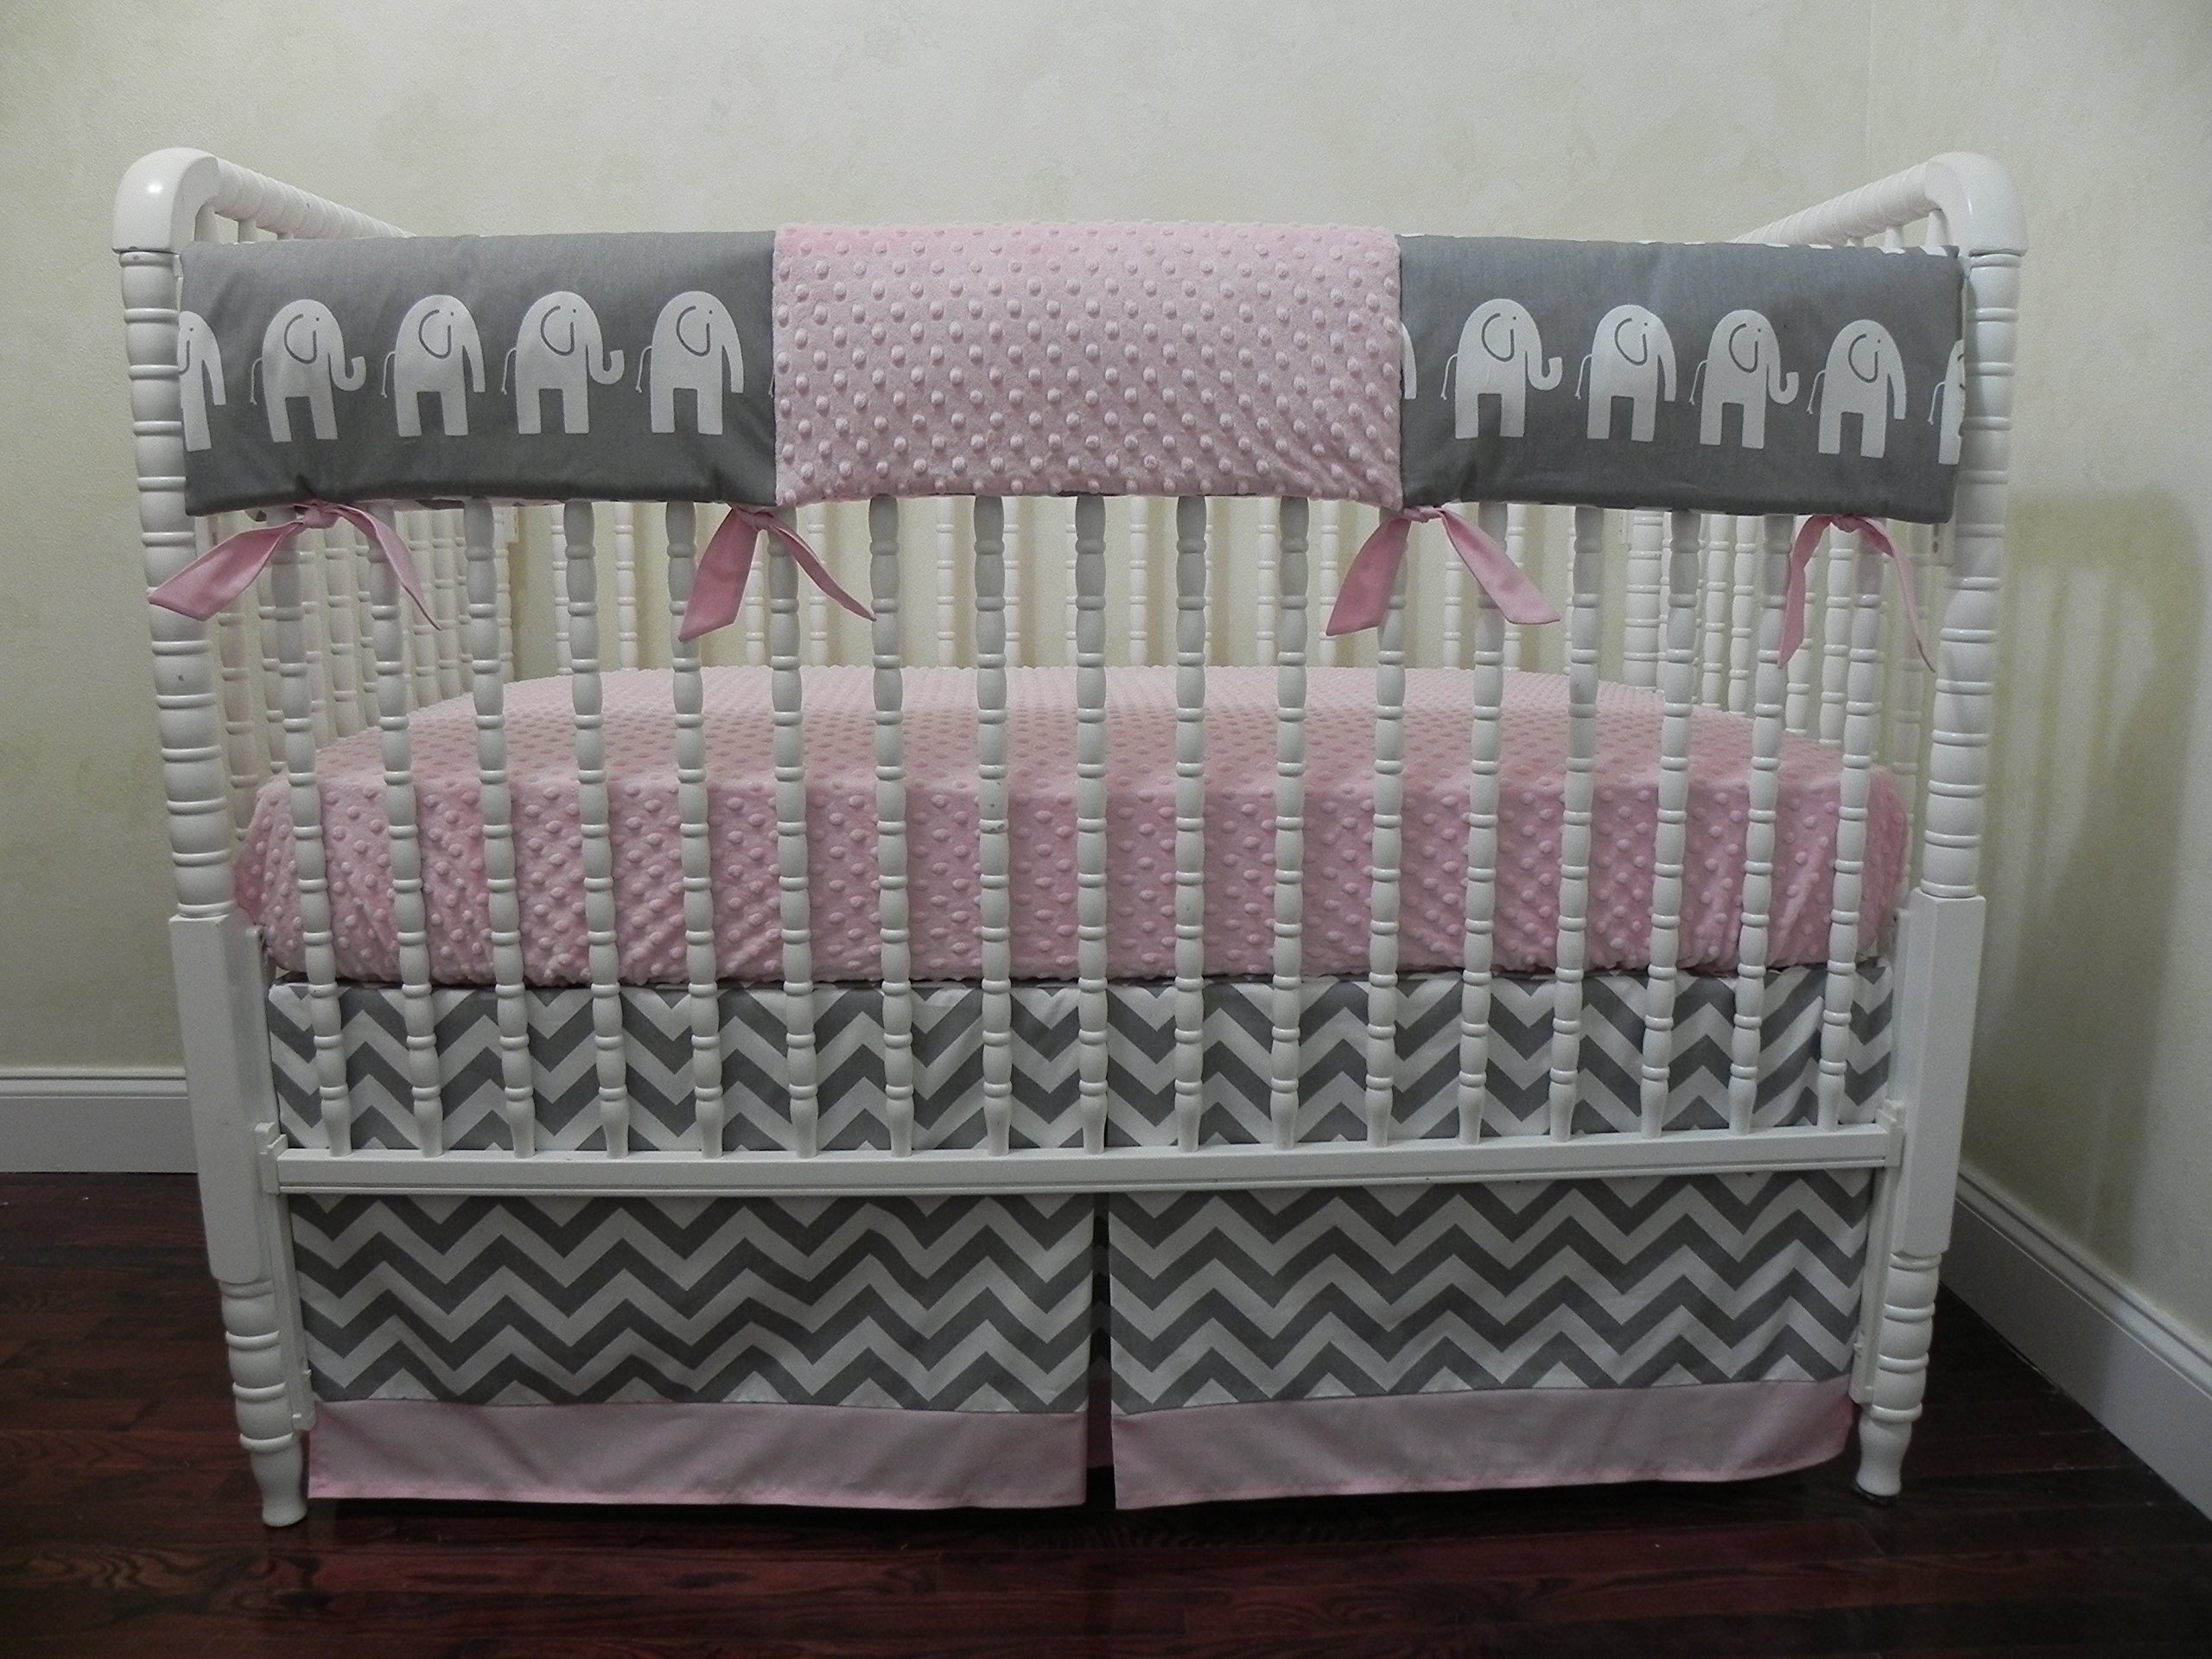 eb38fbfca6b14 Nursery Bedding, Bumperless Baby Crib Bedding Set Gigi, Baby Girl Bedding,  Teething Rail Guard Cover, Elephant Baby Bedding in Gray, White, and Light  ...